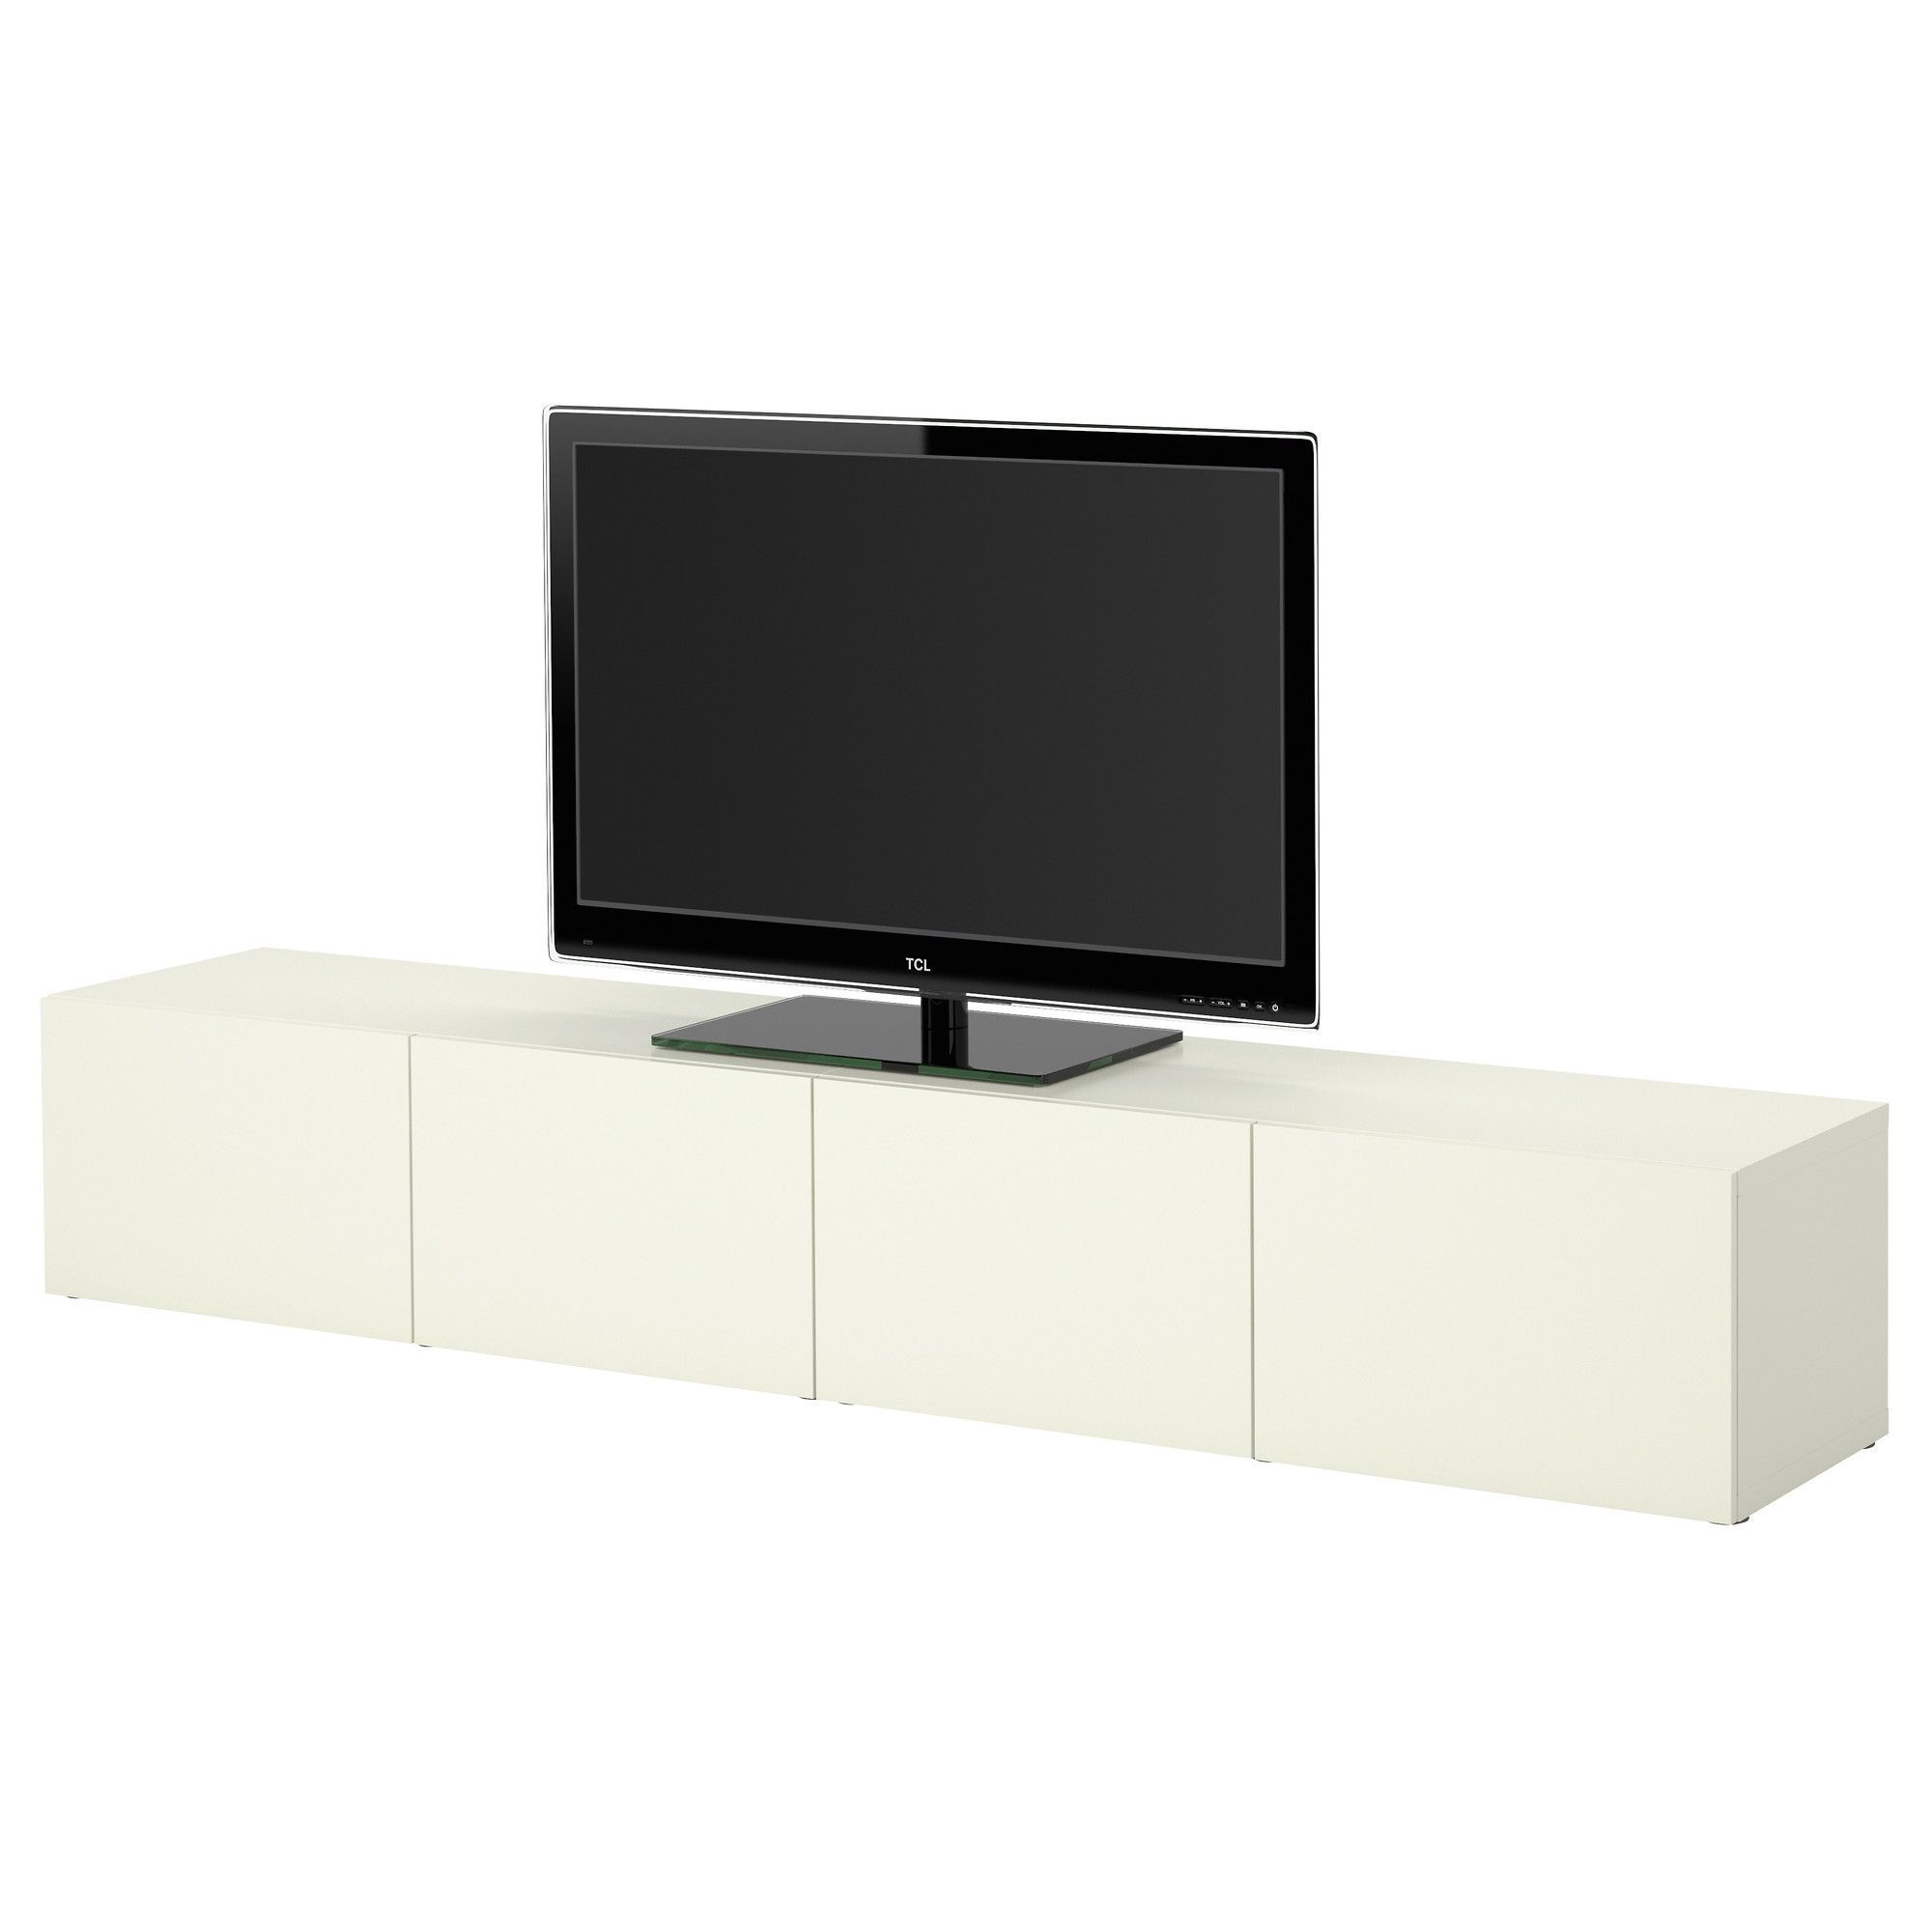 Besta Tv BestÅ Tv Storage Combination Ikea Clean Simple And